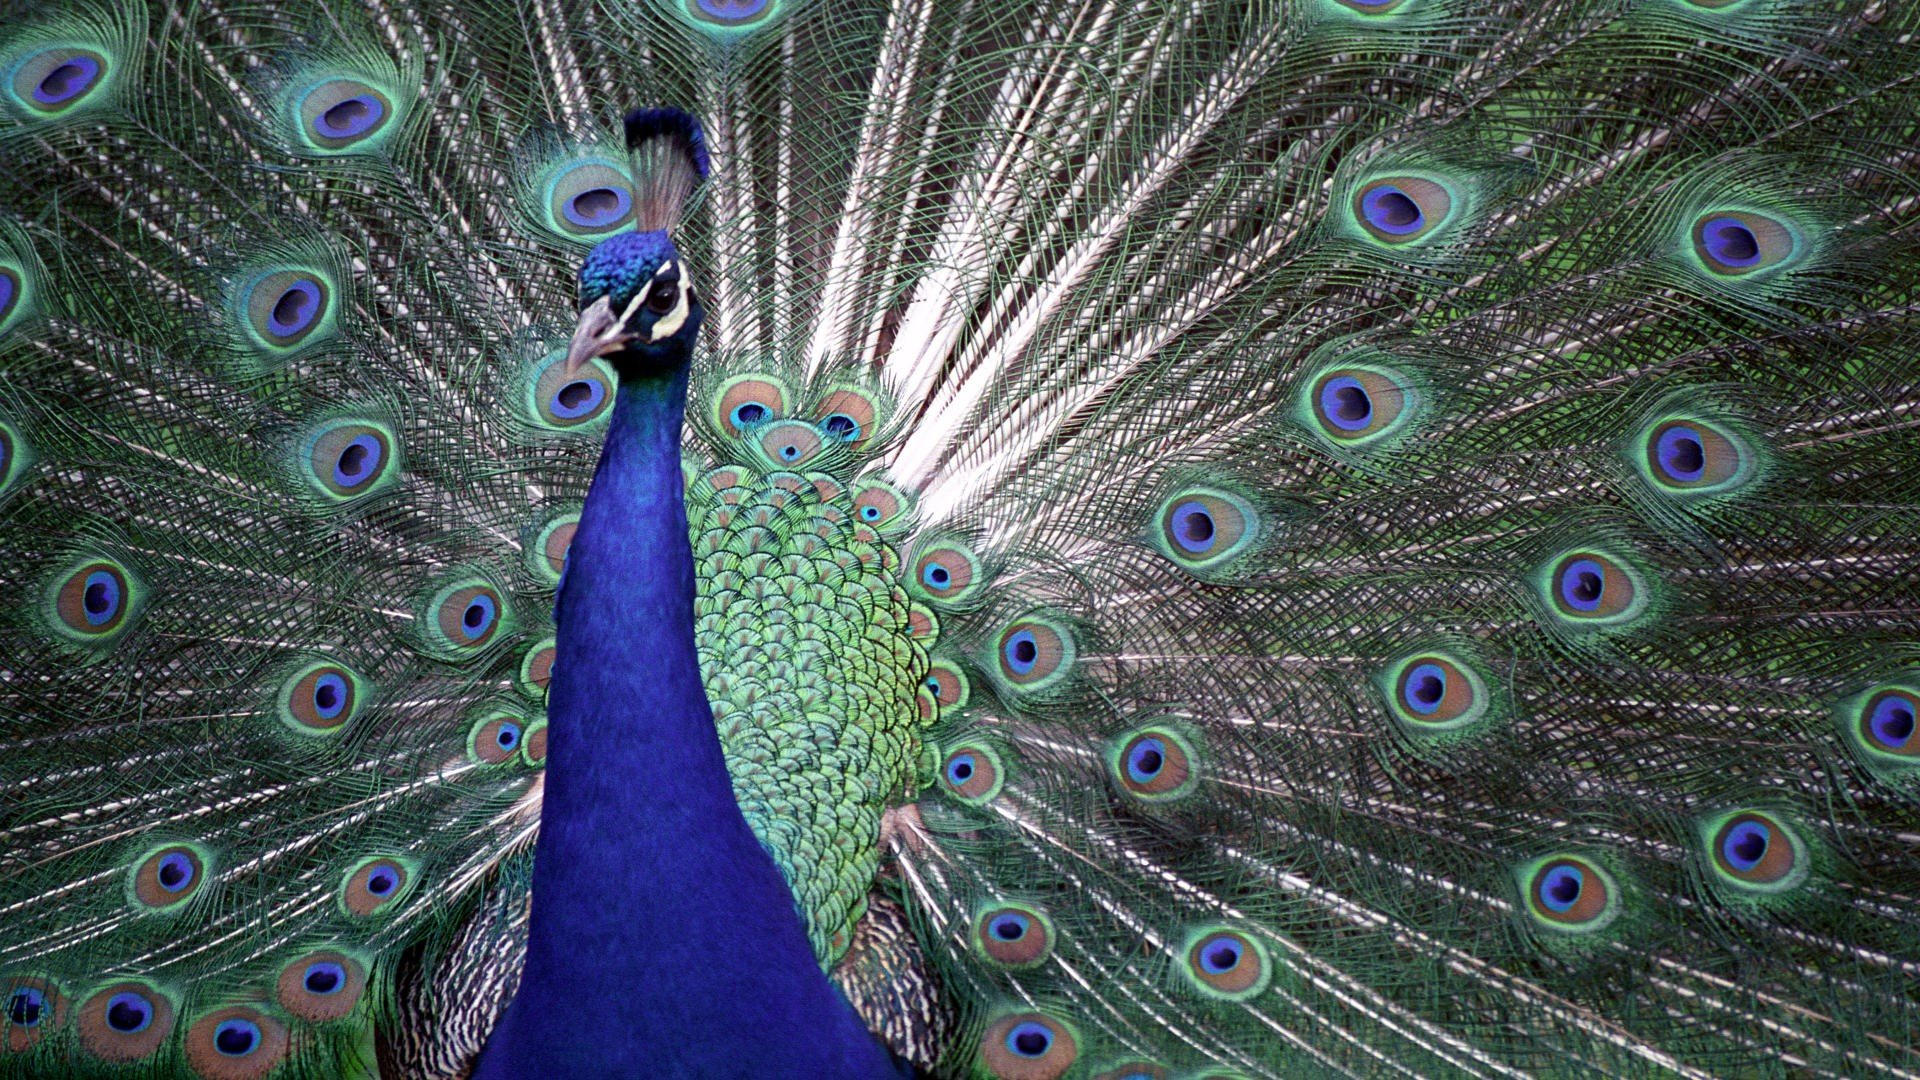 Awesome Peacock free wallpaper ID:151778 for hd 1080p desktop